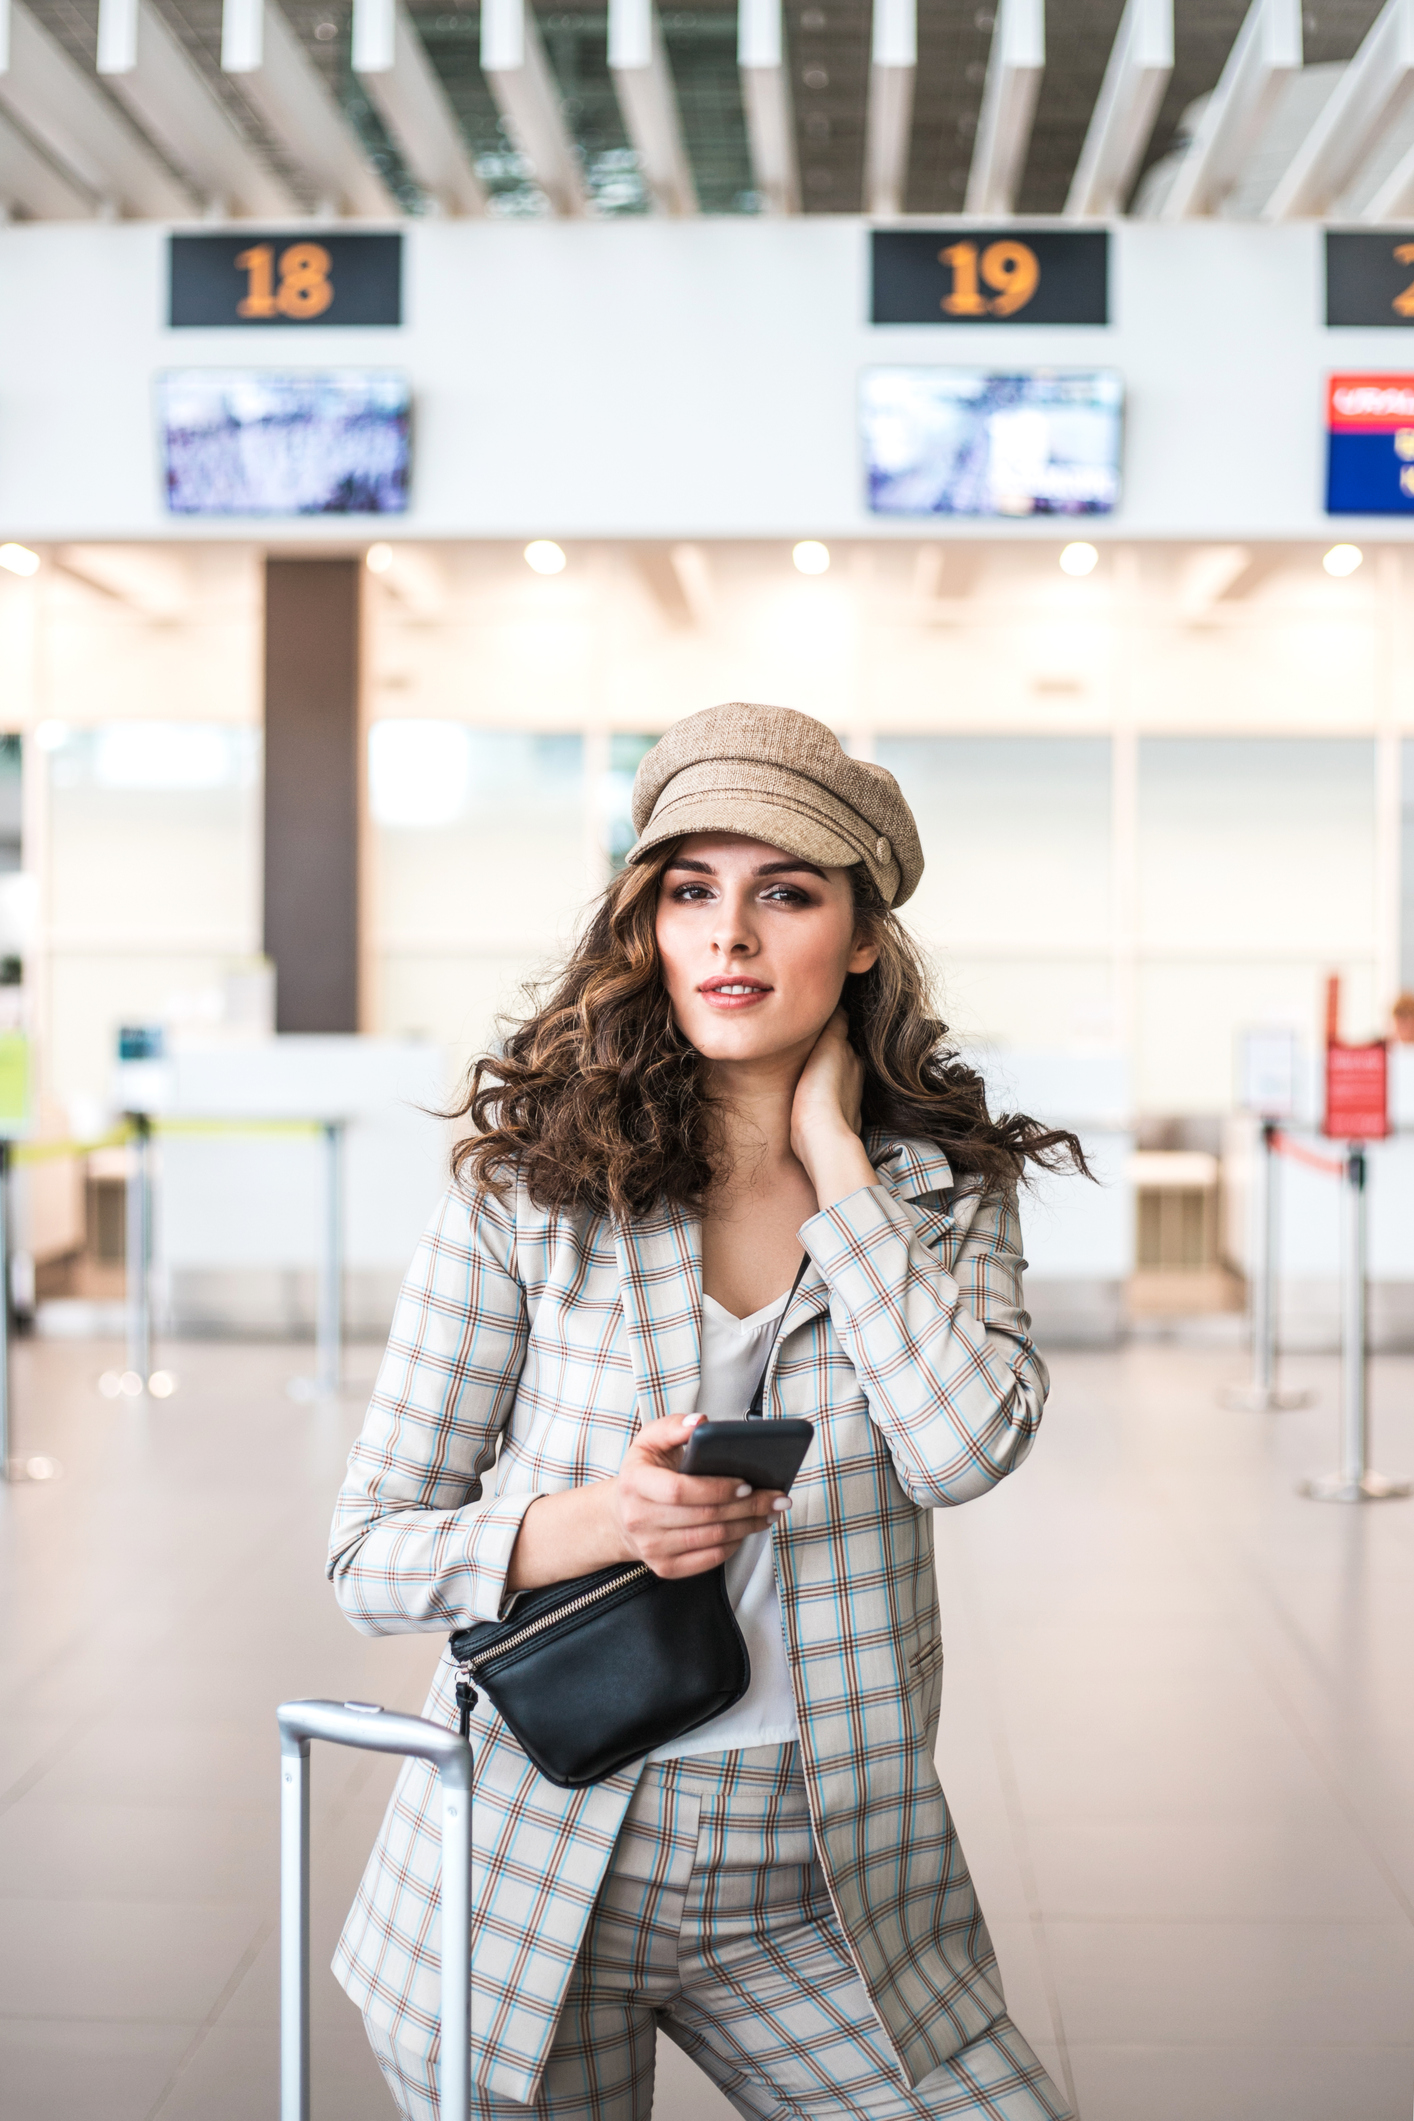 Young beautiful businesswoman reading phone messages in Airport waiting room.